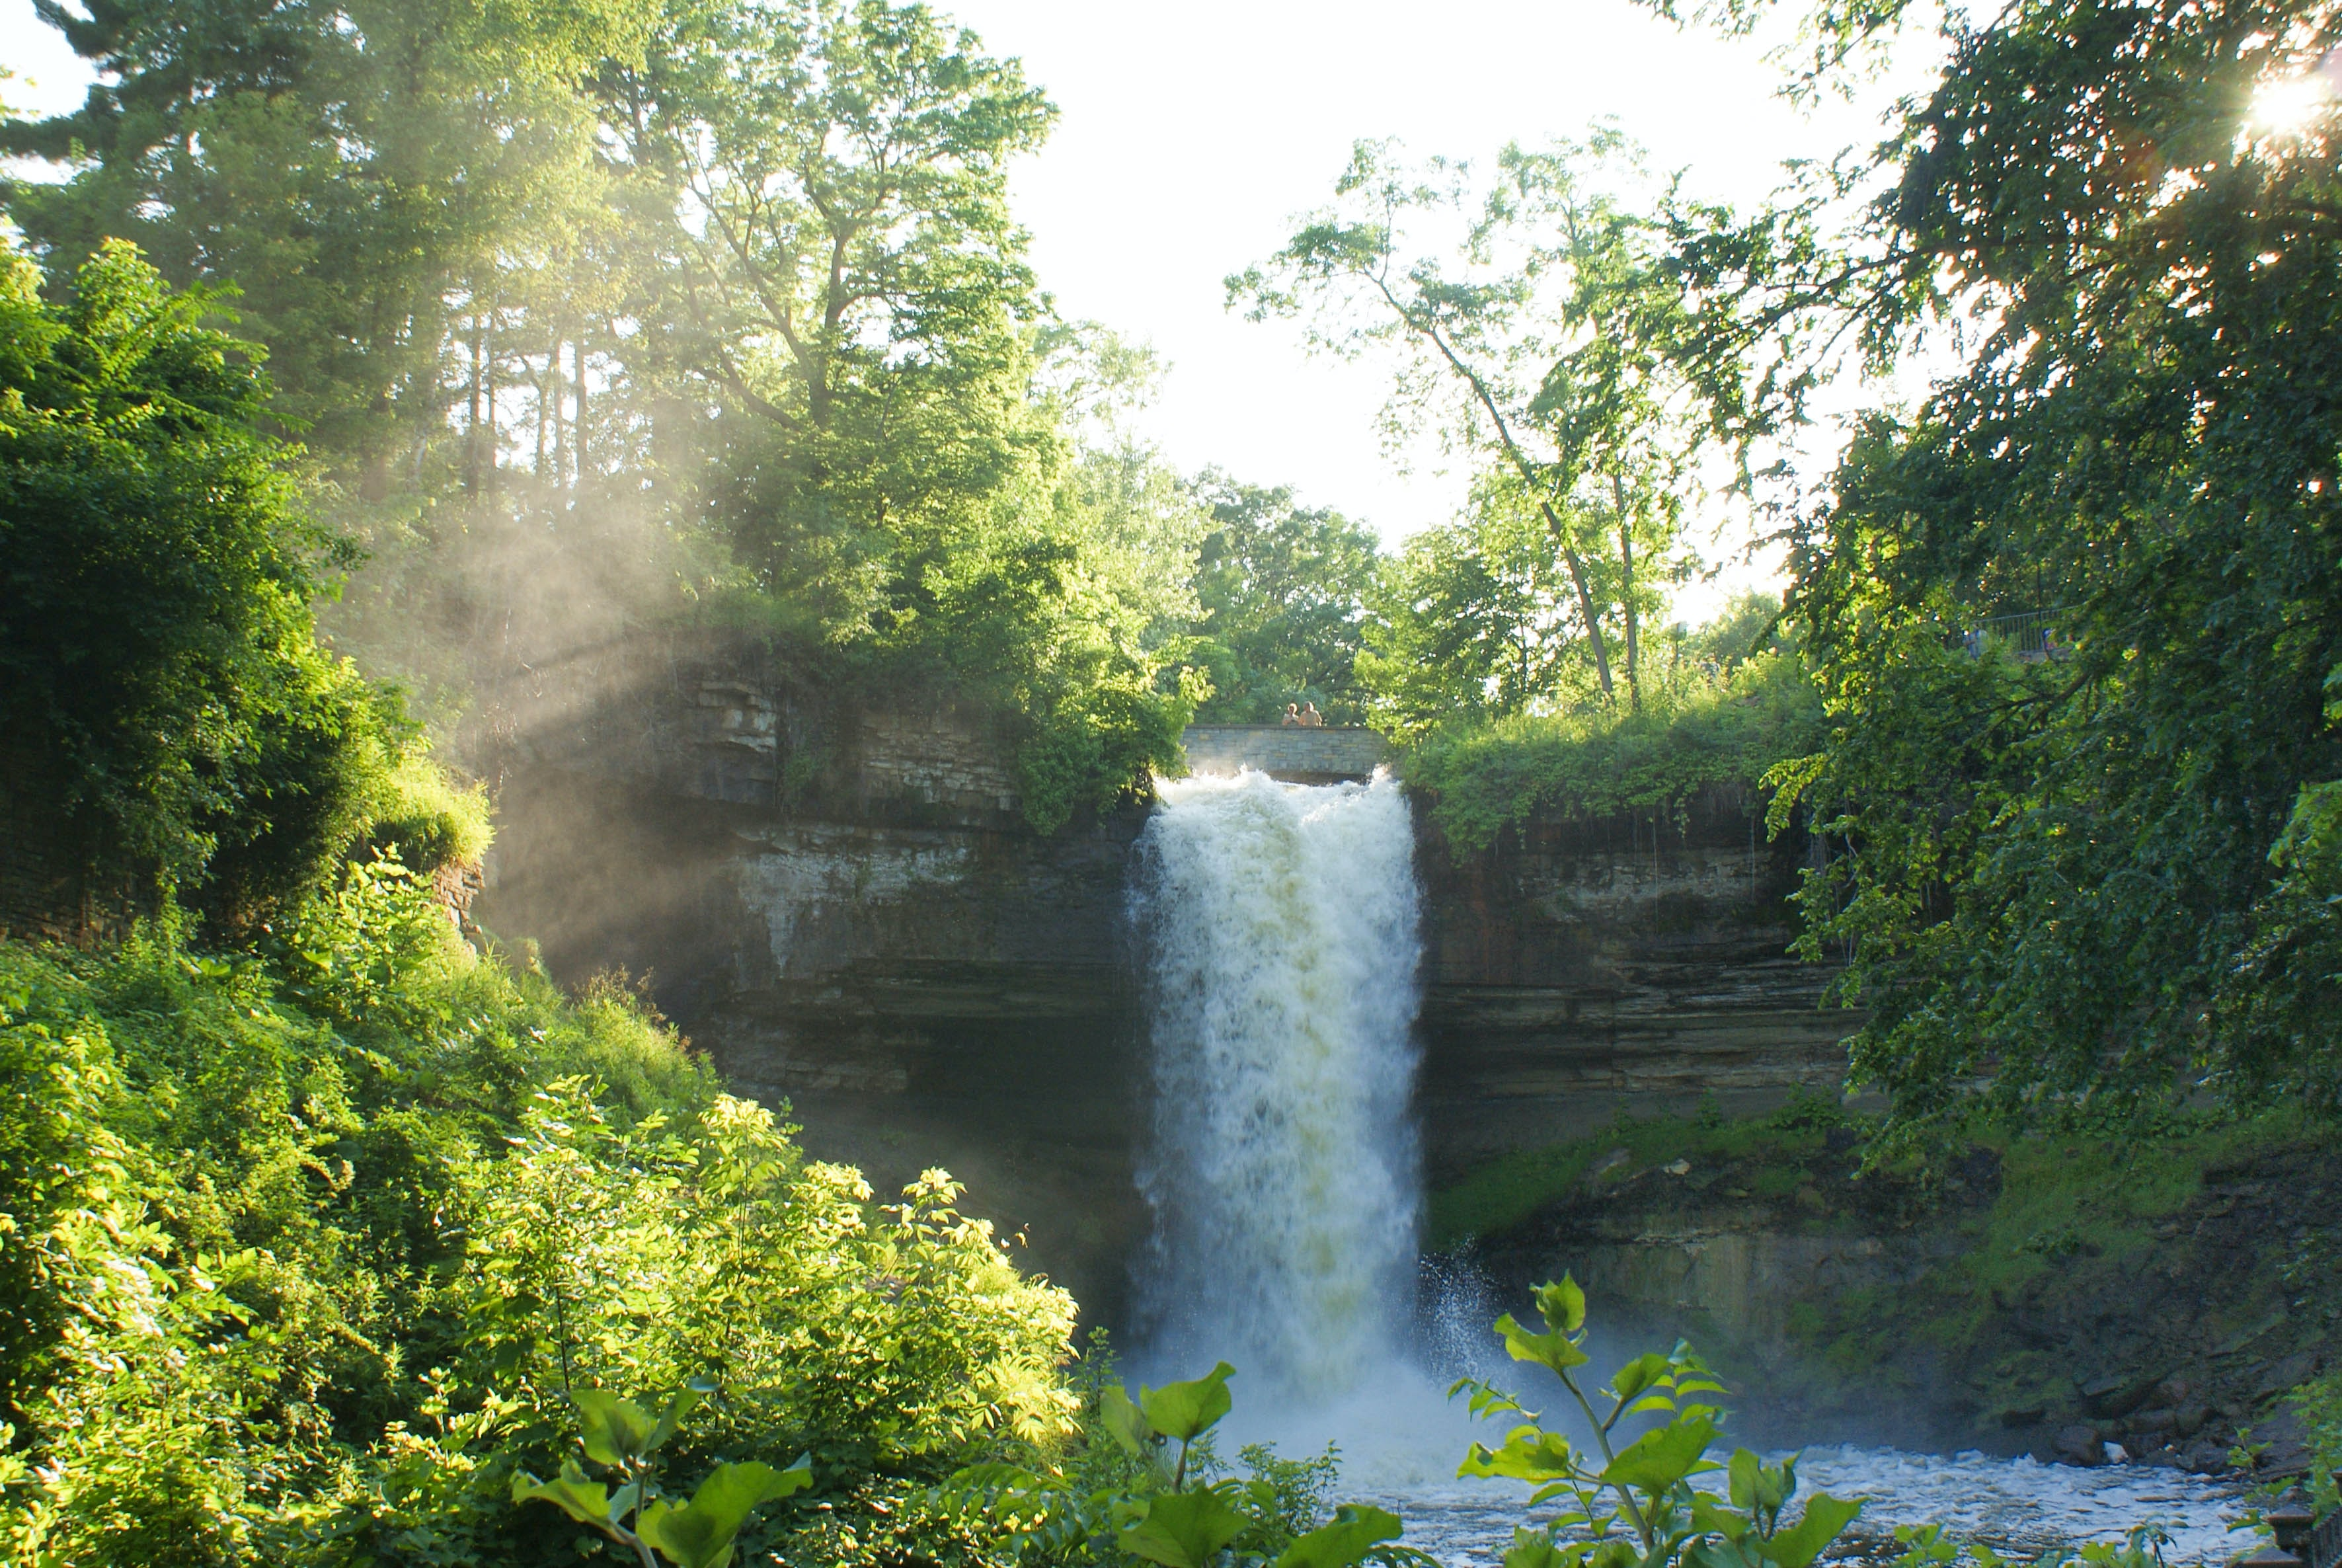 waterfalls surrounded by green trees during daytime